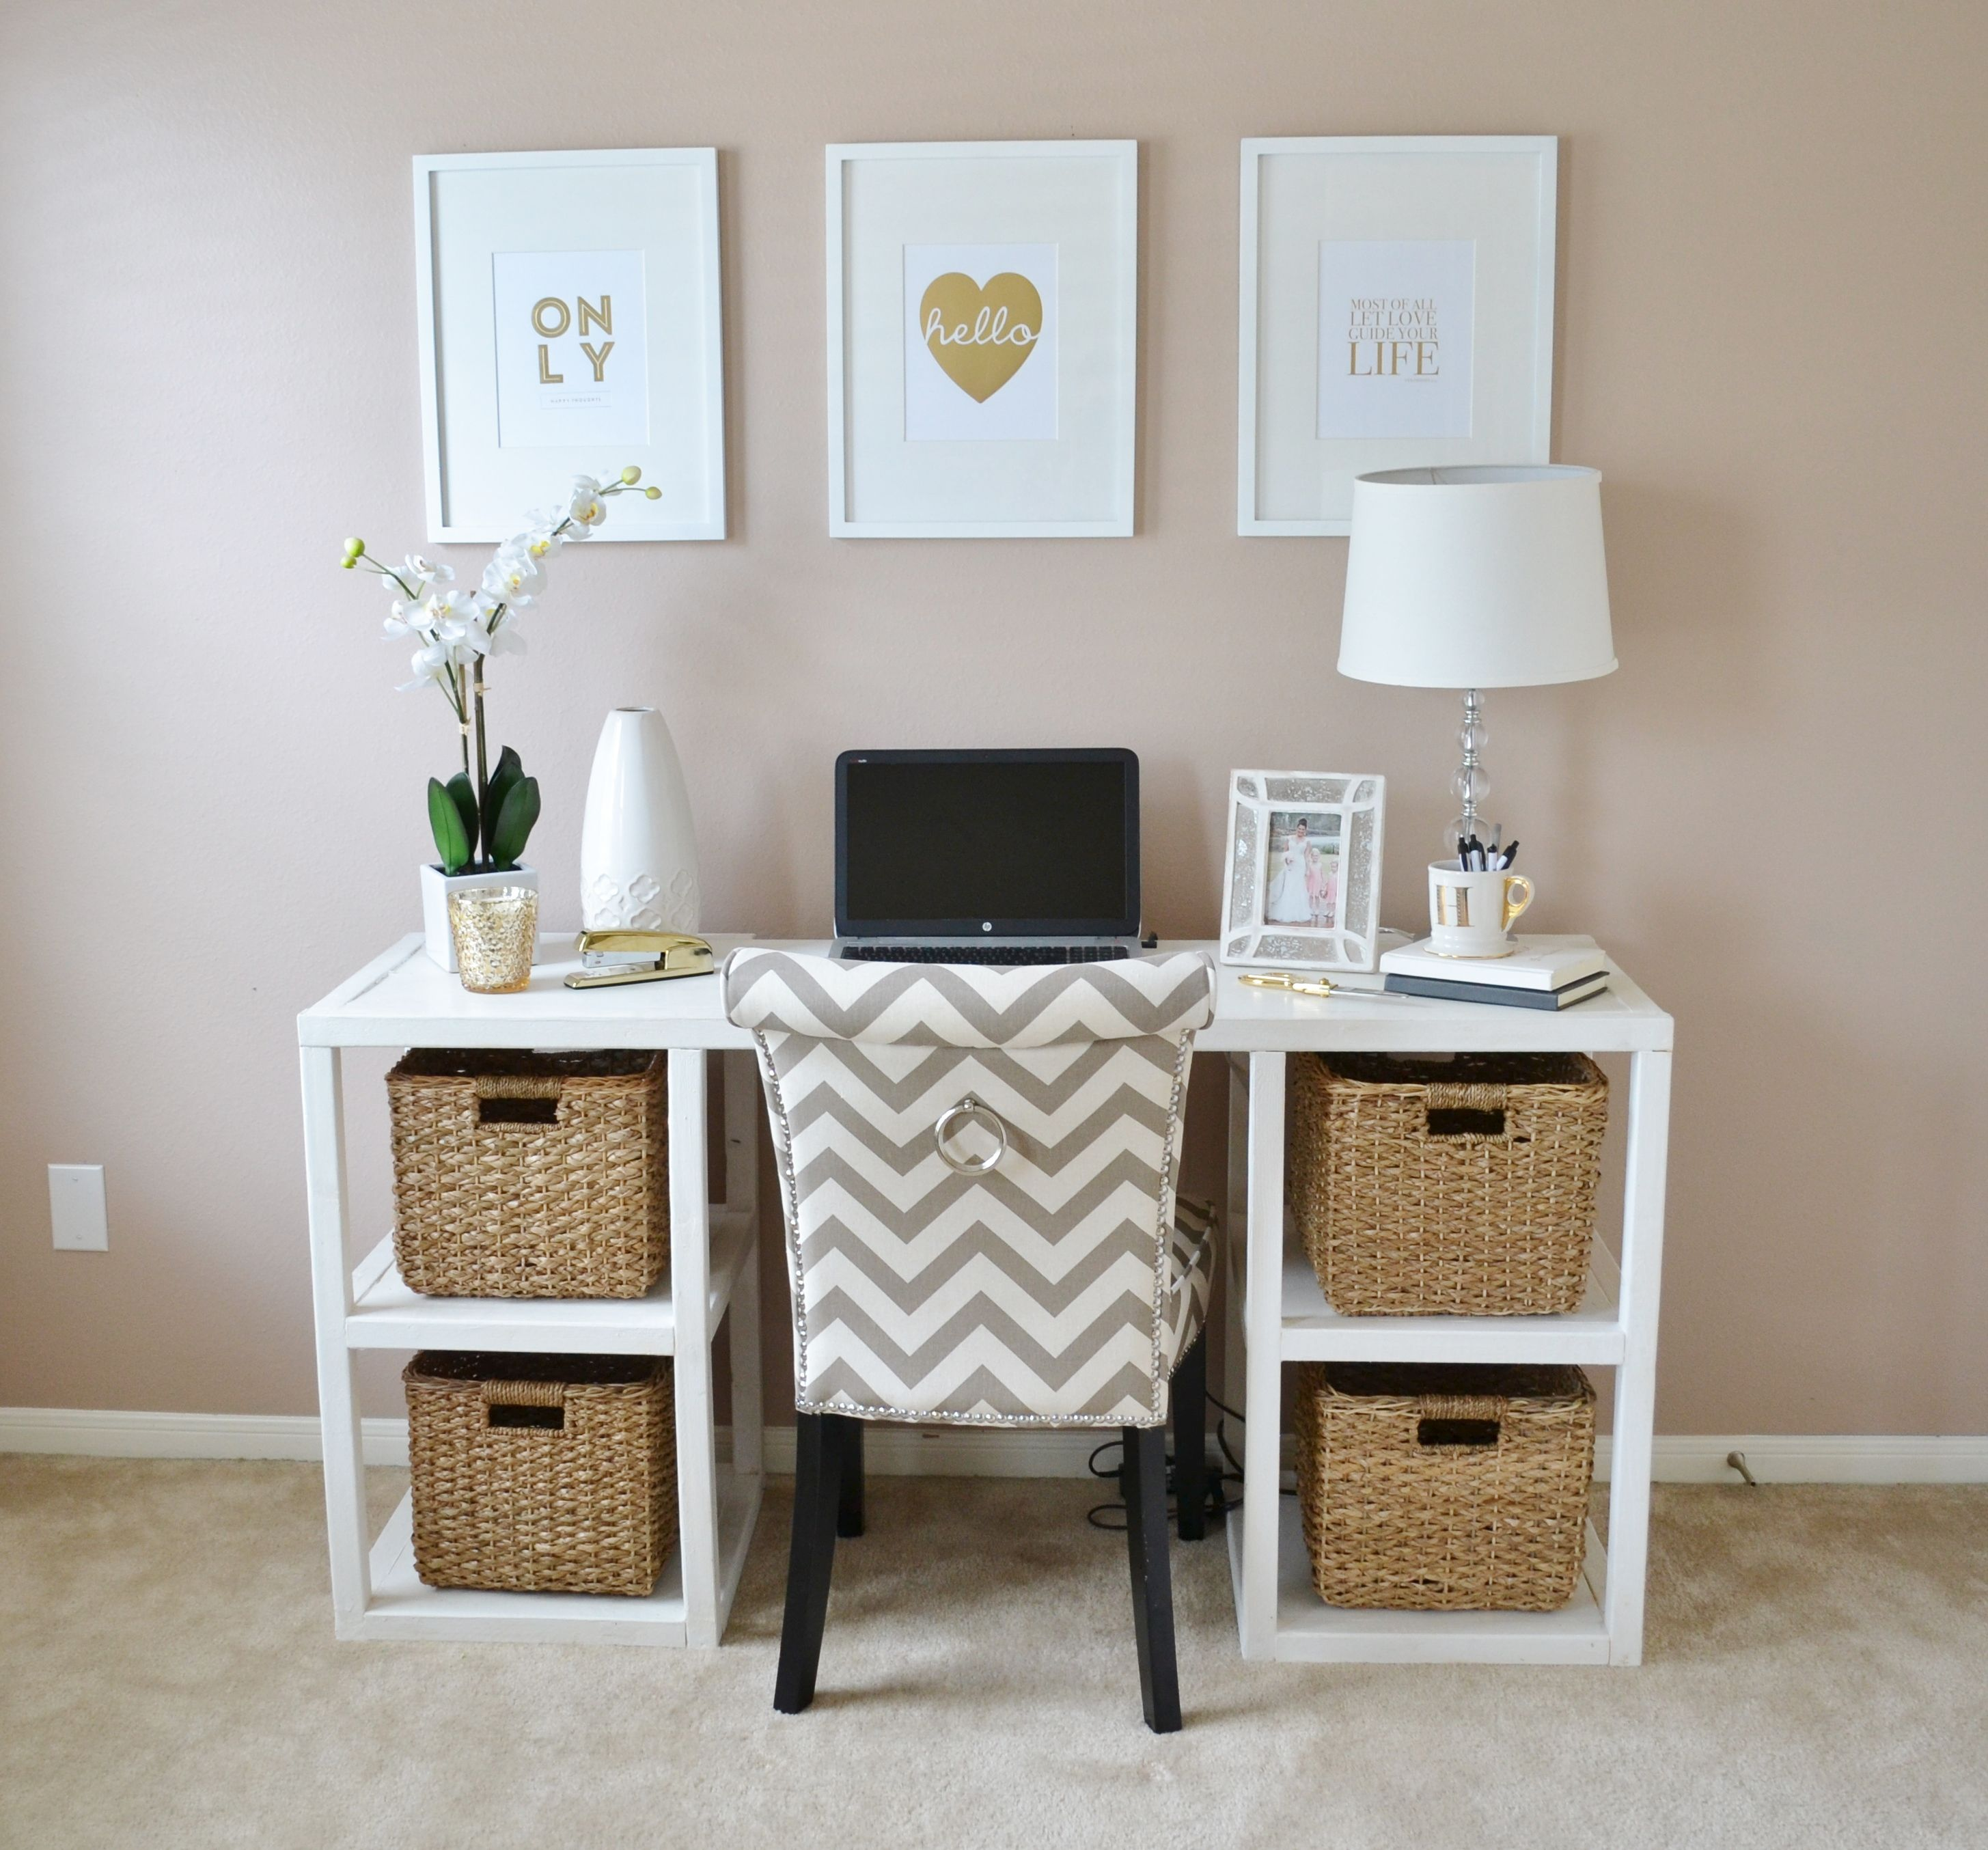 Bedroom Art Desk: Depiction Of Draw Your Wall With Beautiful Art With